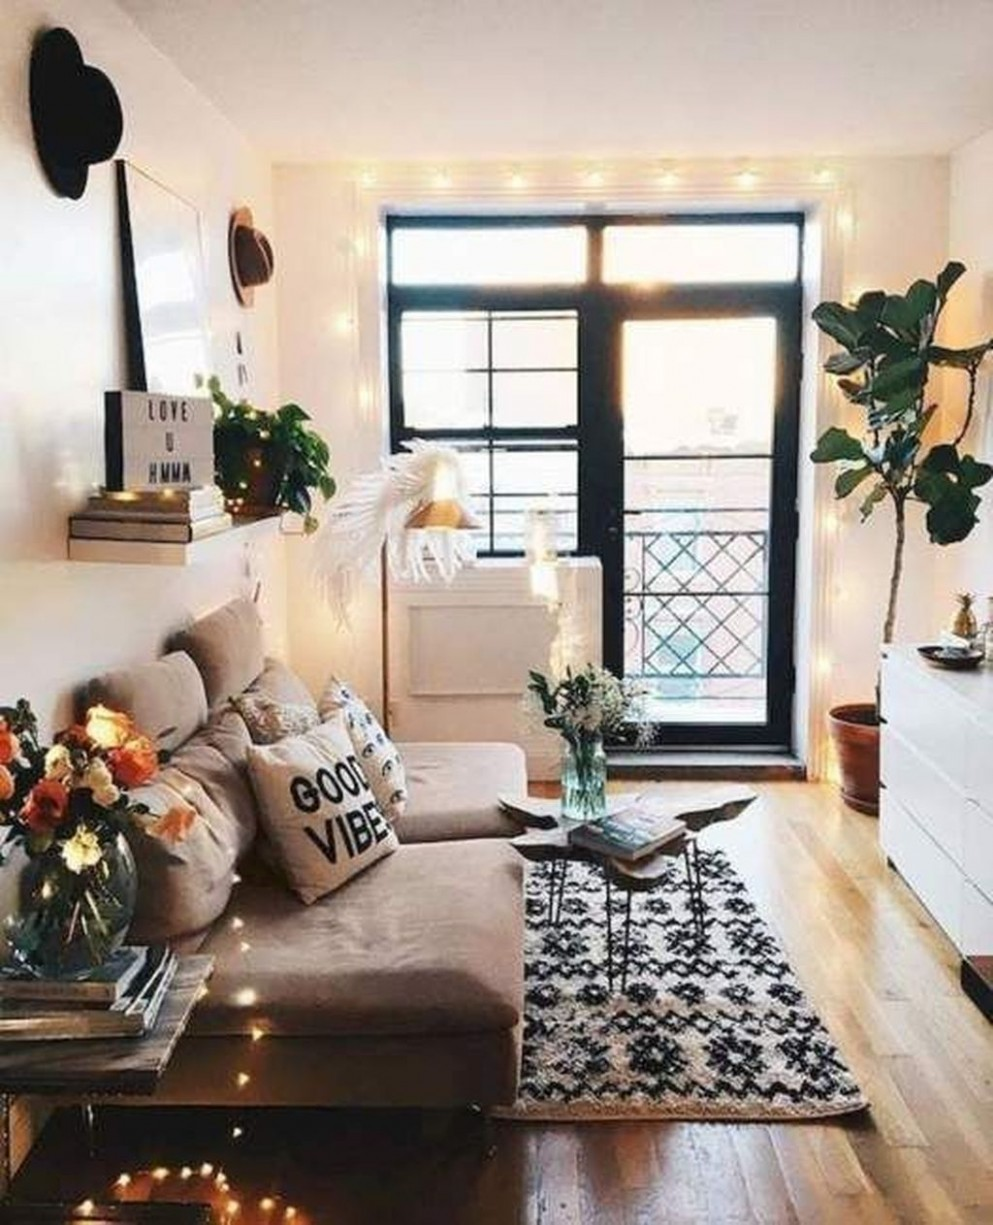 9 Unique Small Apartment Decorating Ideas On A Budget  College  - Small Apartment Decorating Ideas Boho